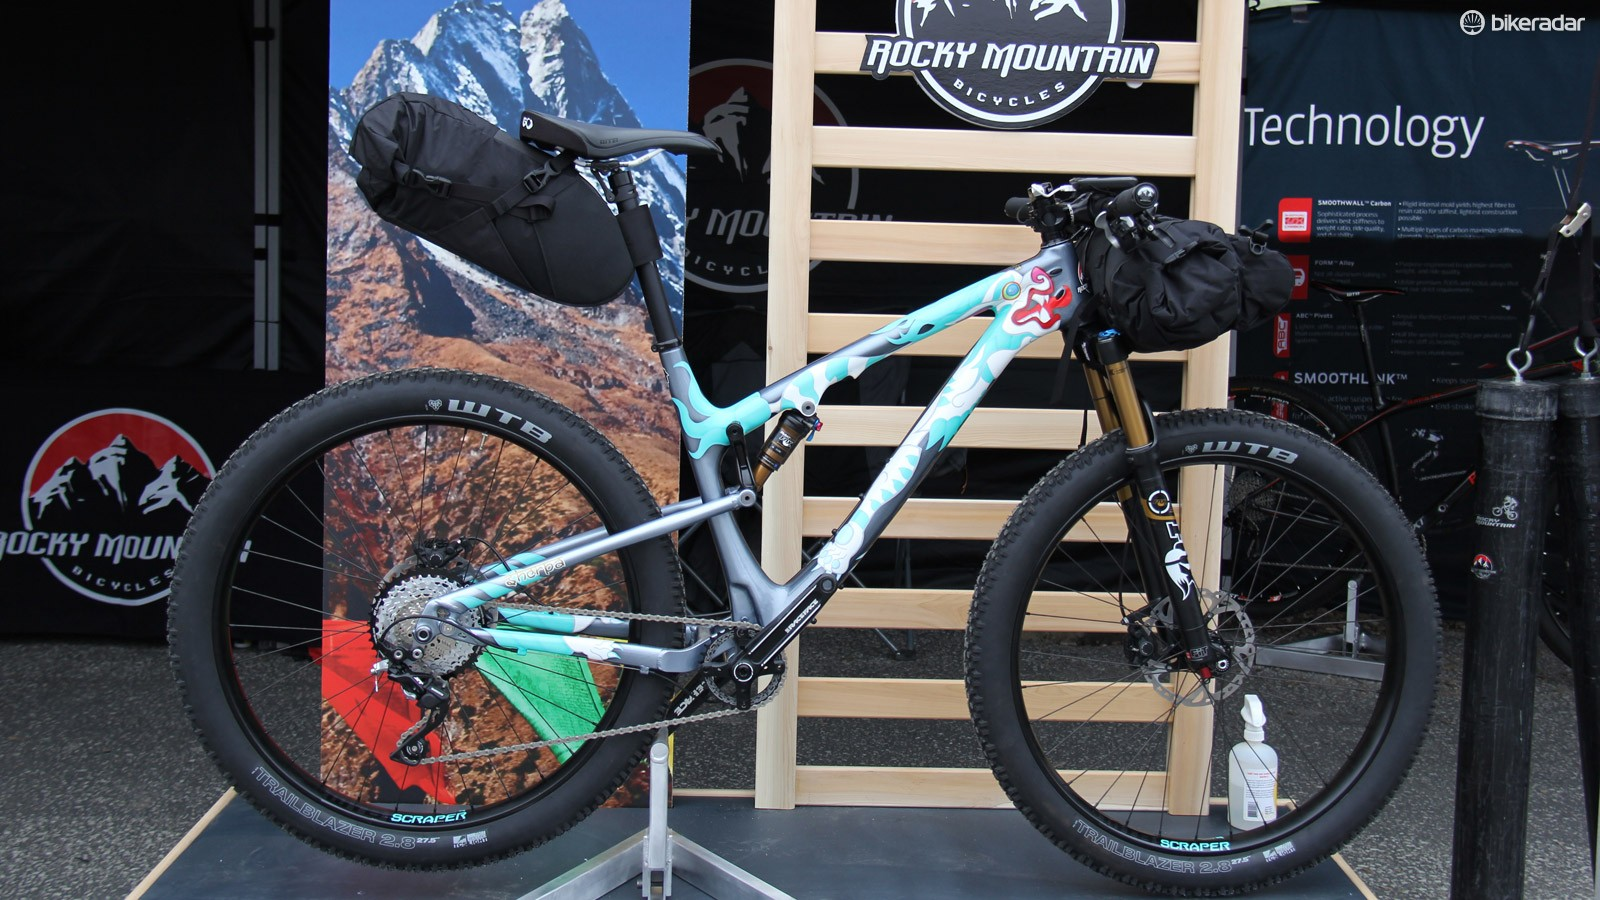 Rocky Mountain created the Sherpa, a prototype 27.5+ adventuring touring rig, for this year's Sea Otter bicycle expo